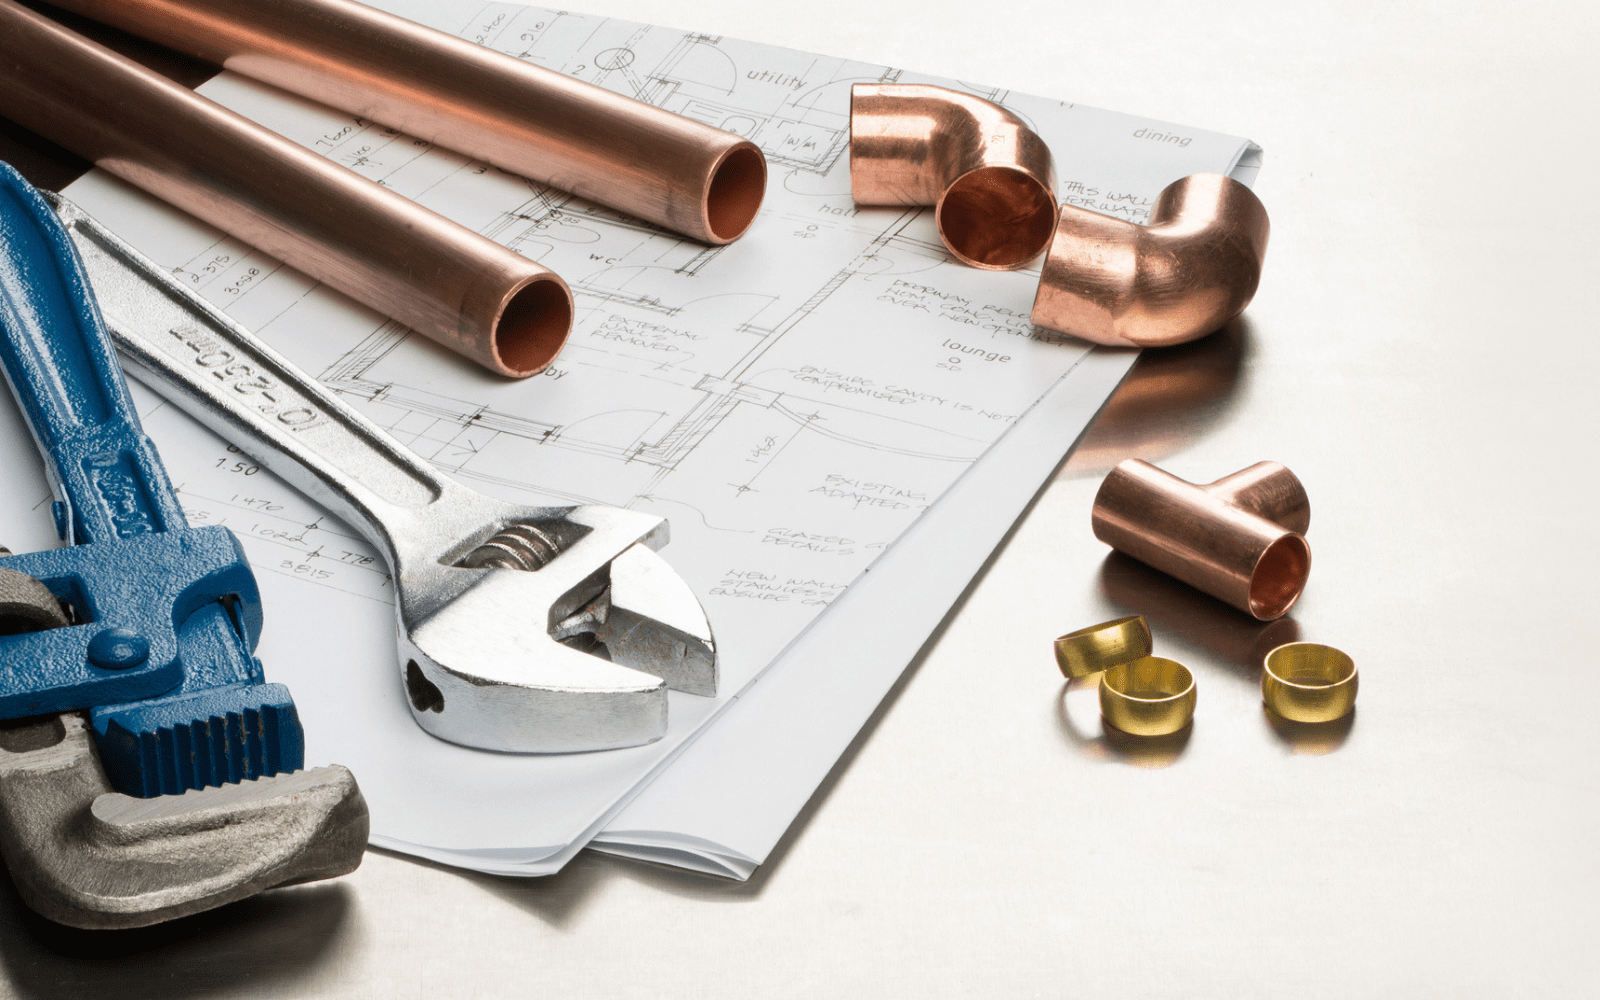 Plumbing wrenches and pipes